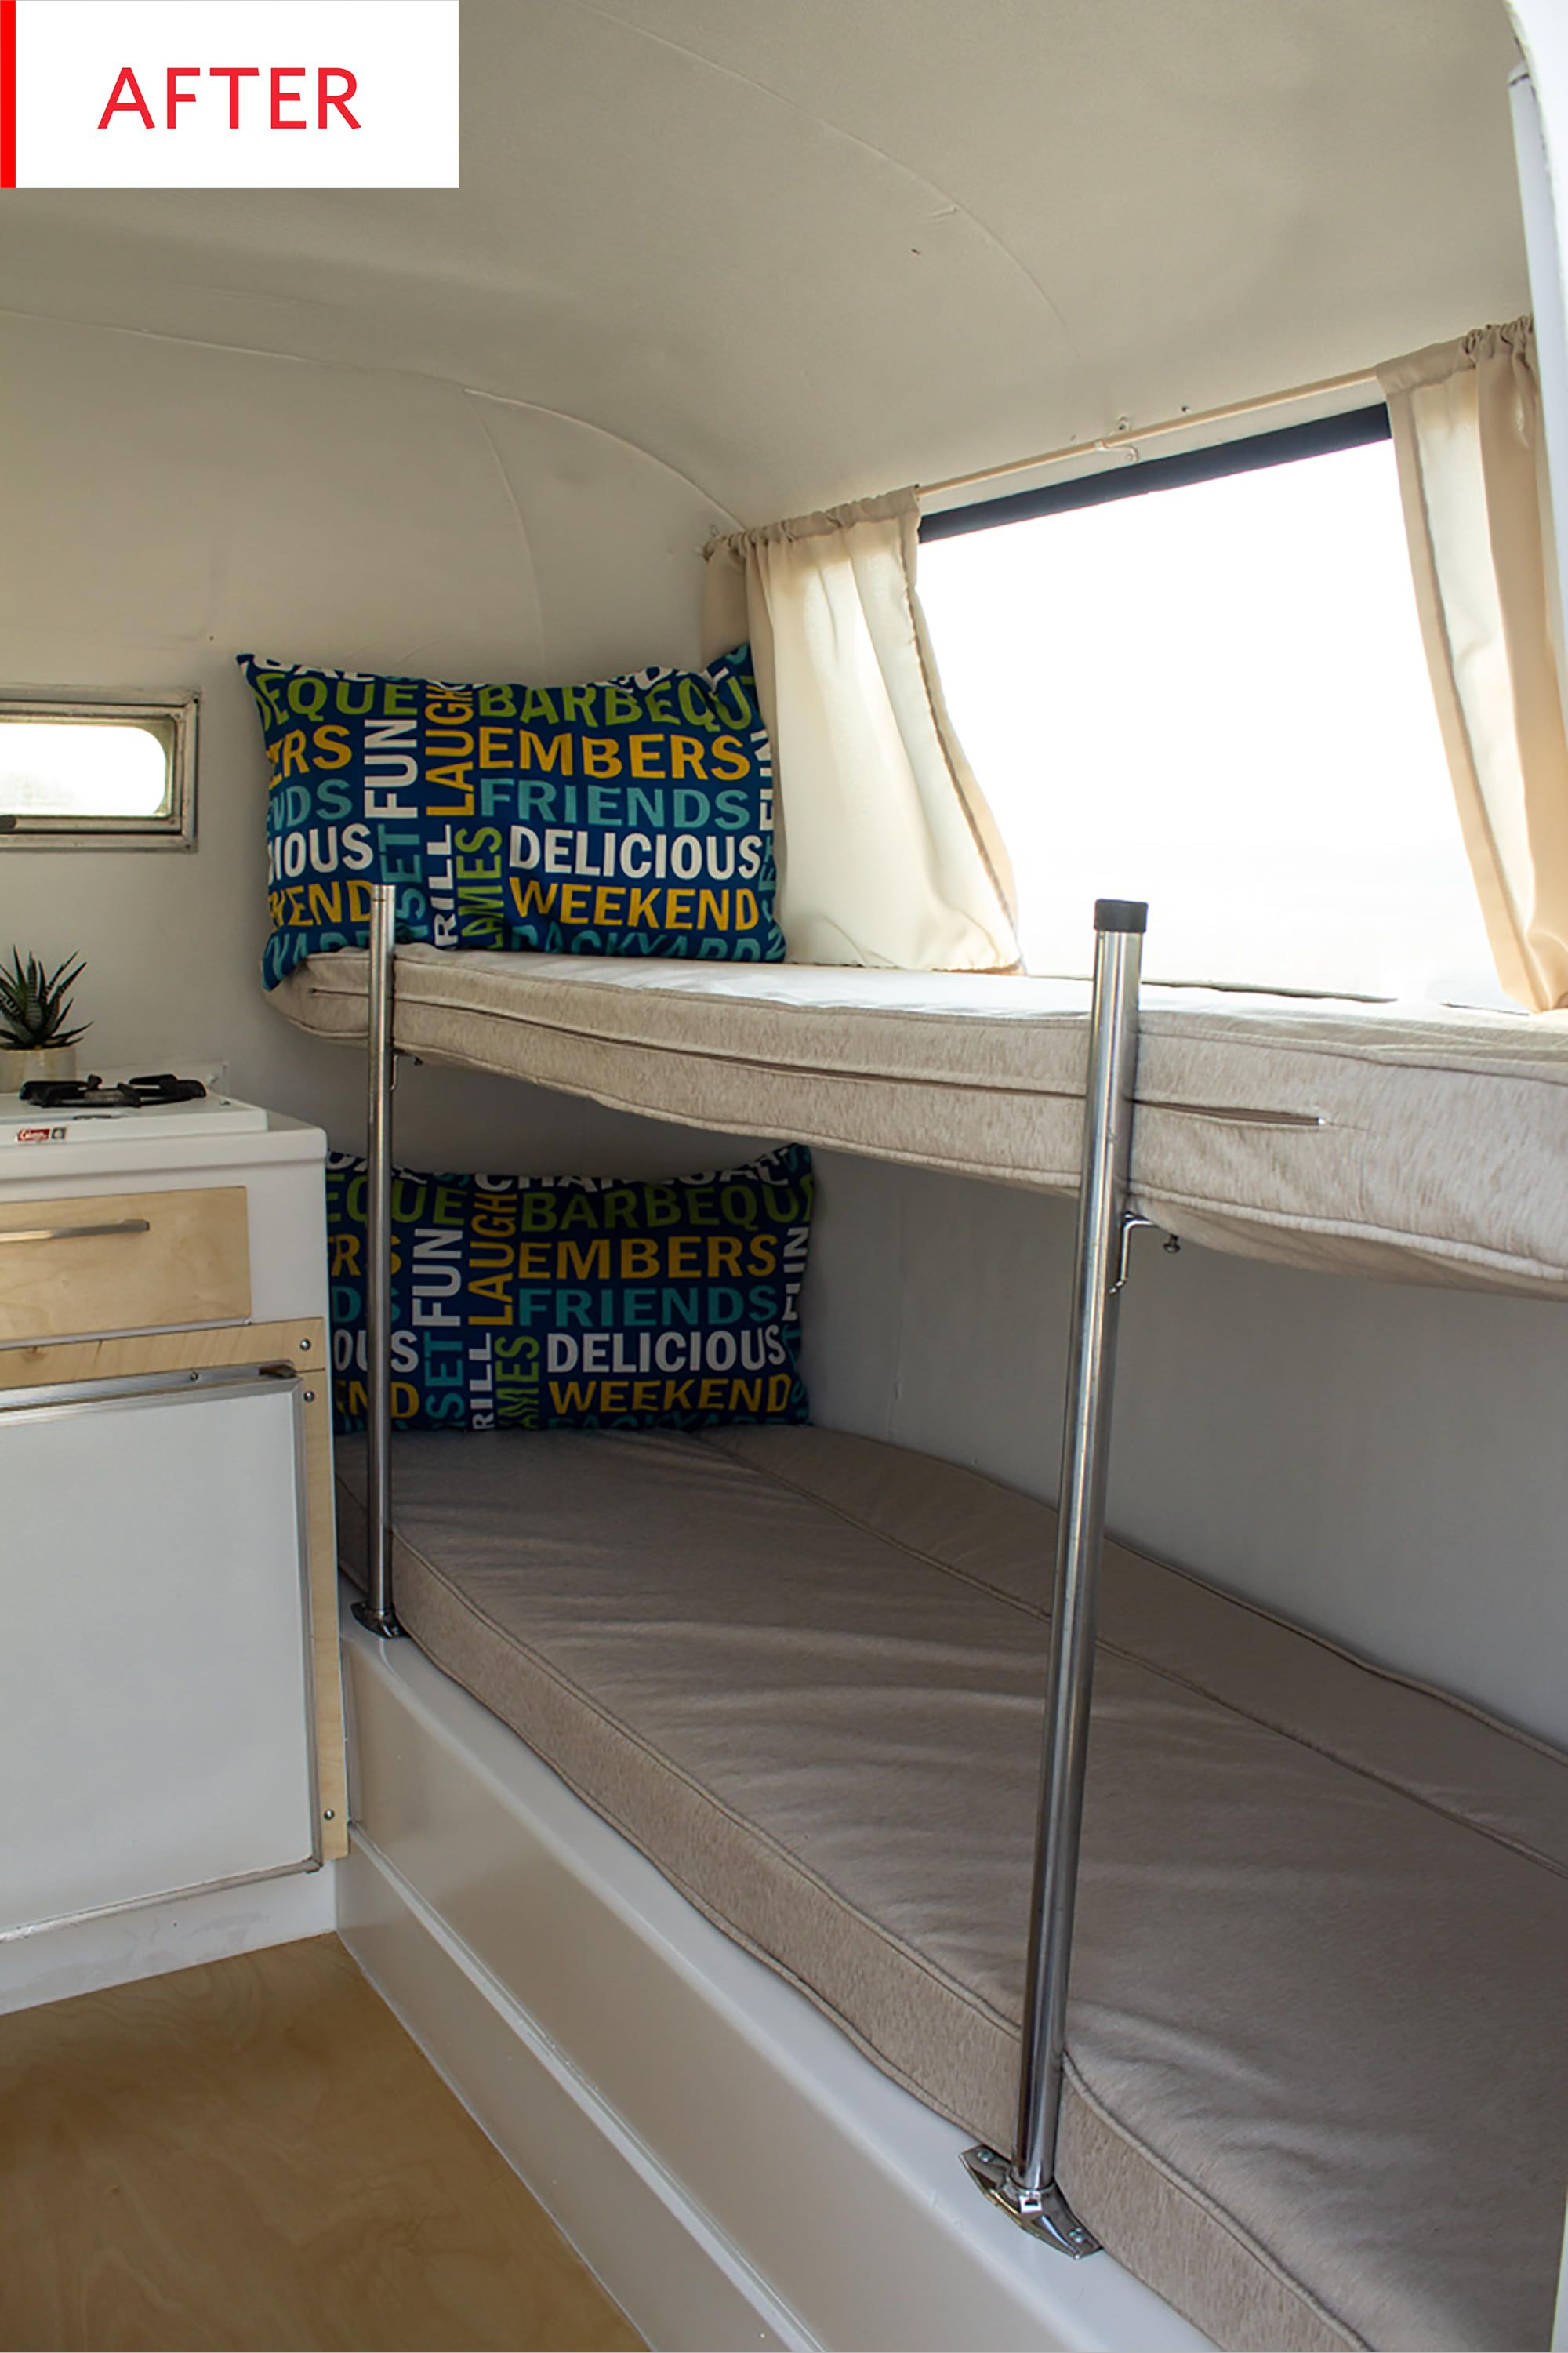 Before & After This Travel Trailer Is a Happy Surprise